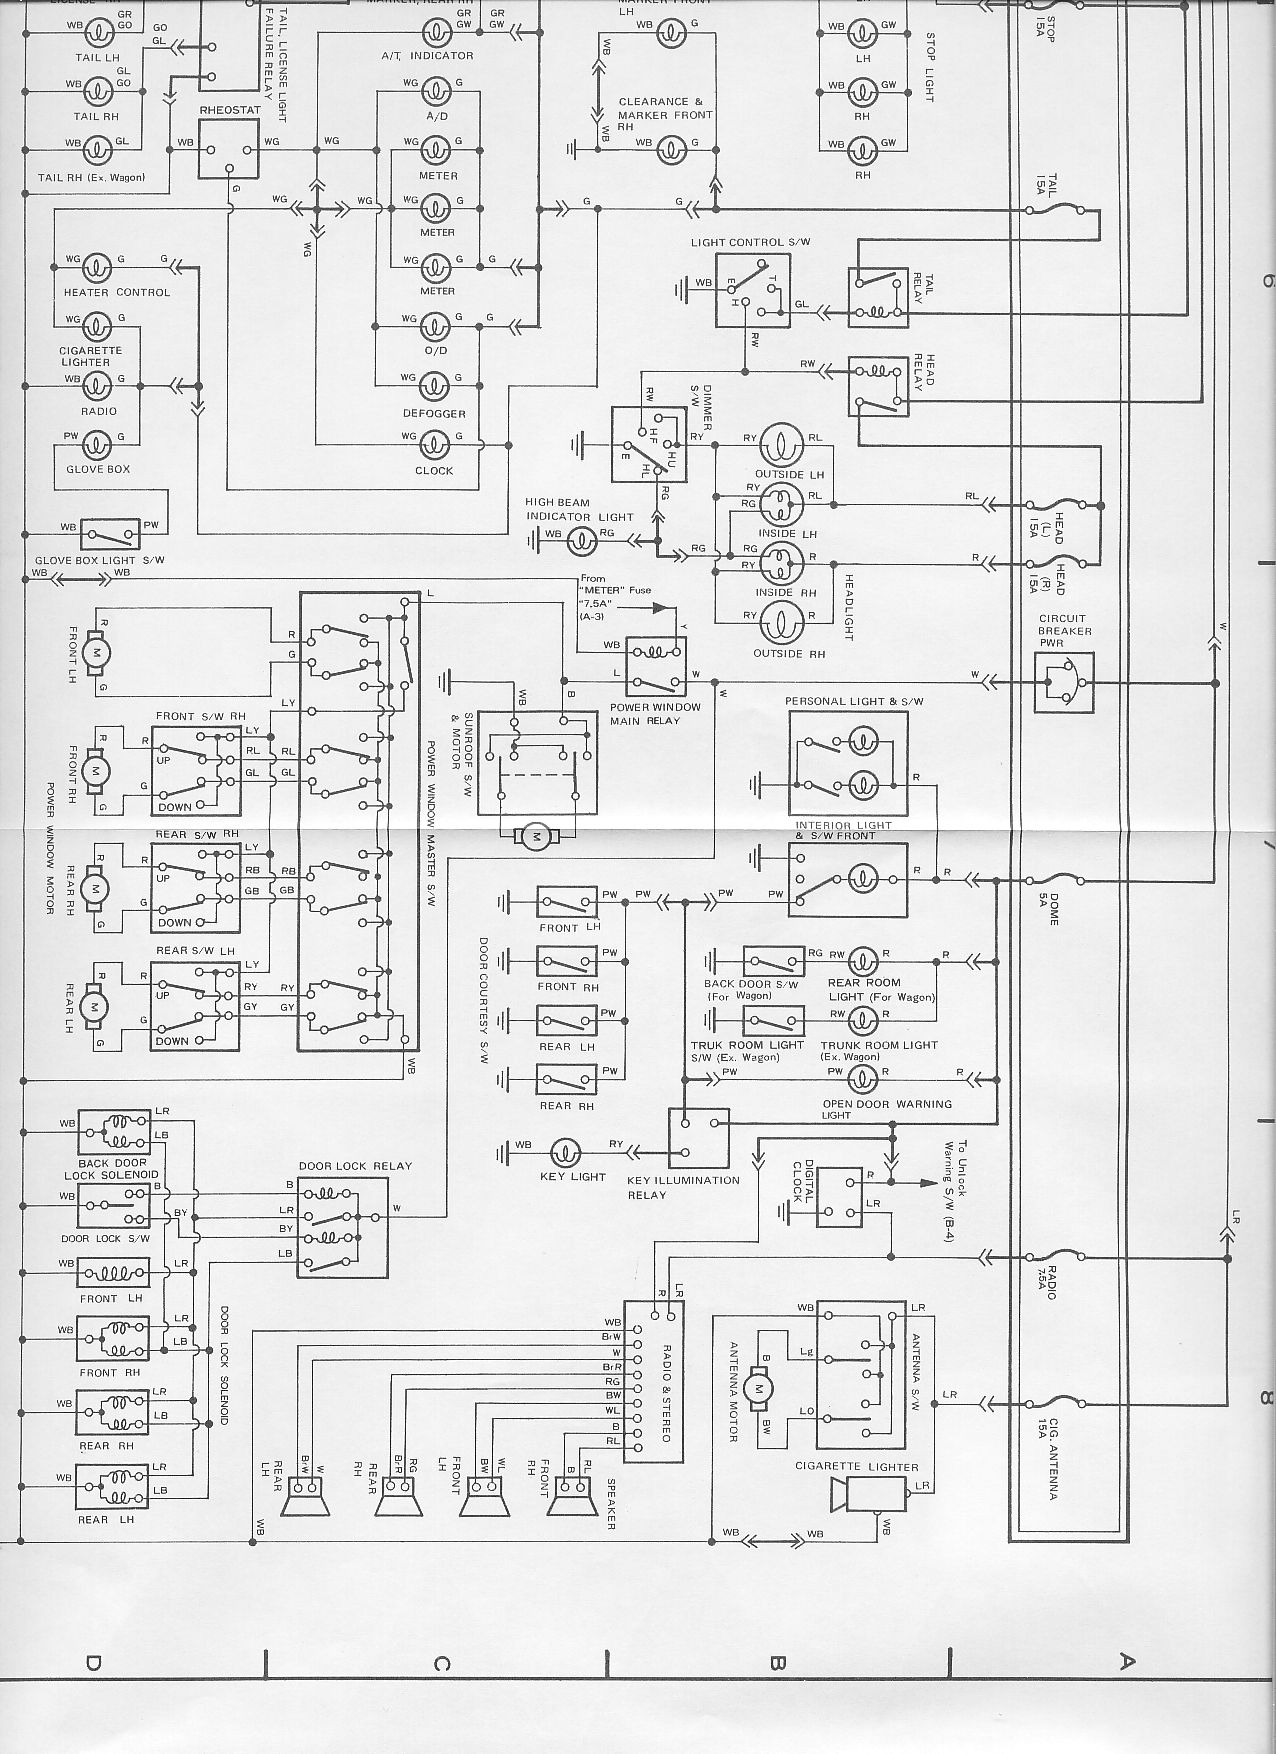 [DIAGRAM] 1983 Toyota Pickup Fuse Diagram FULL Version HD